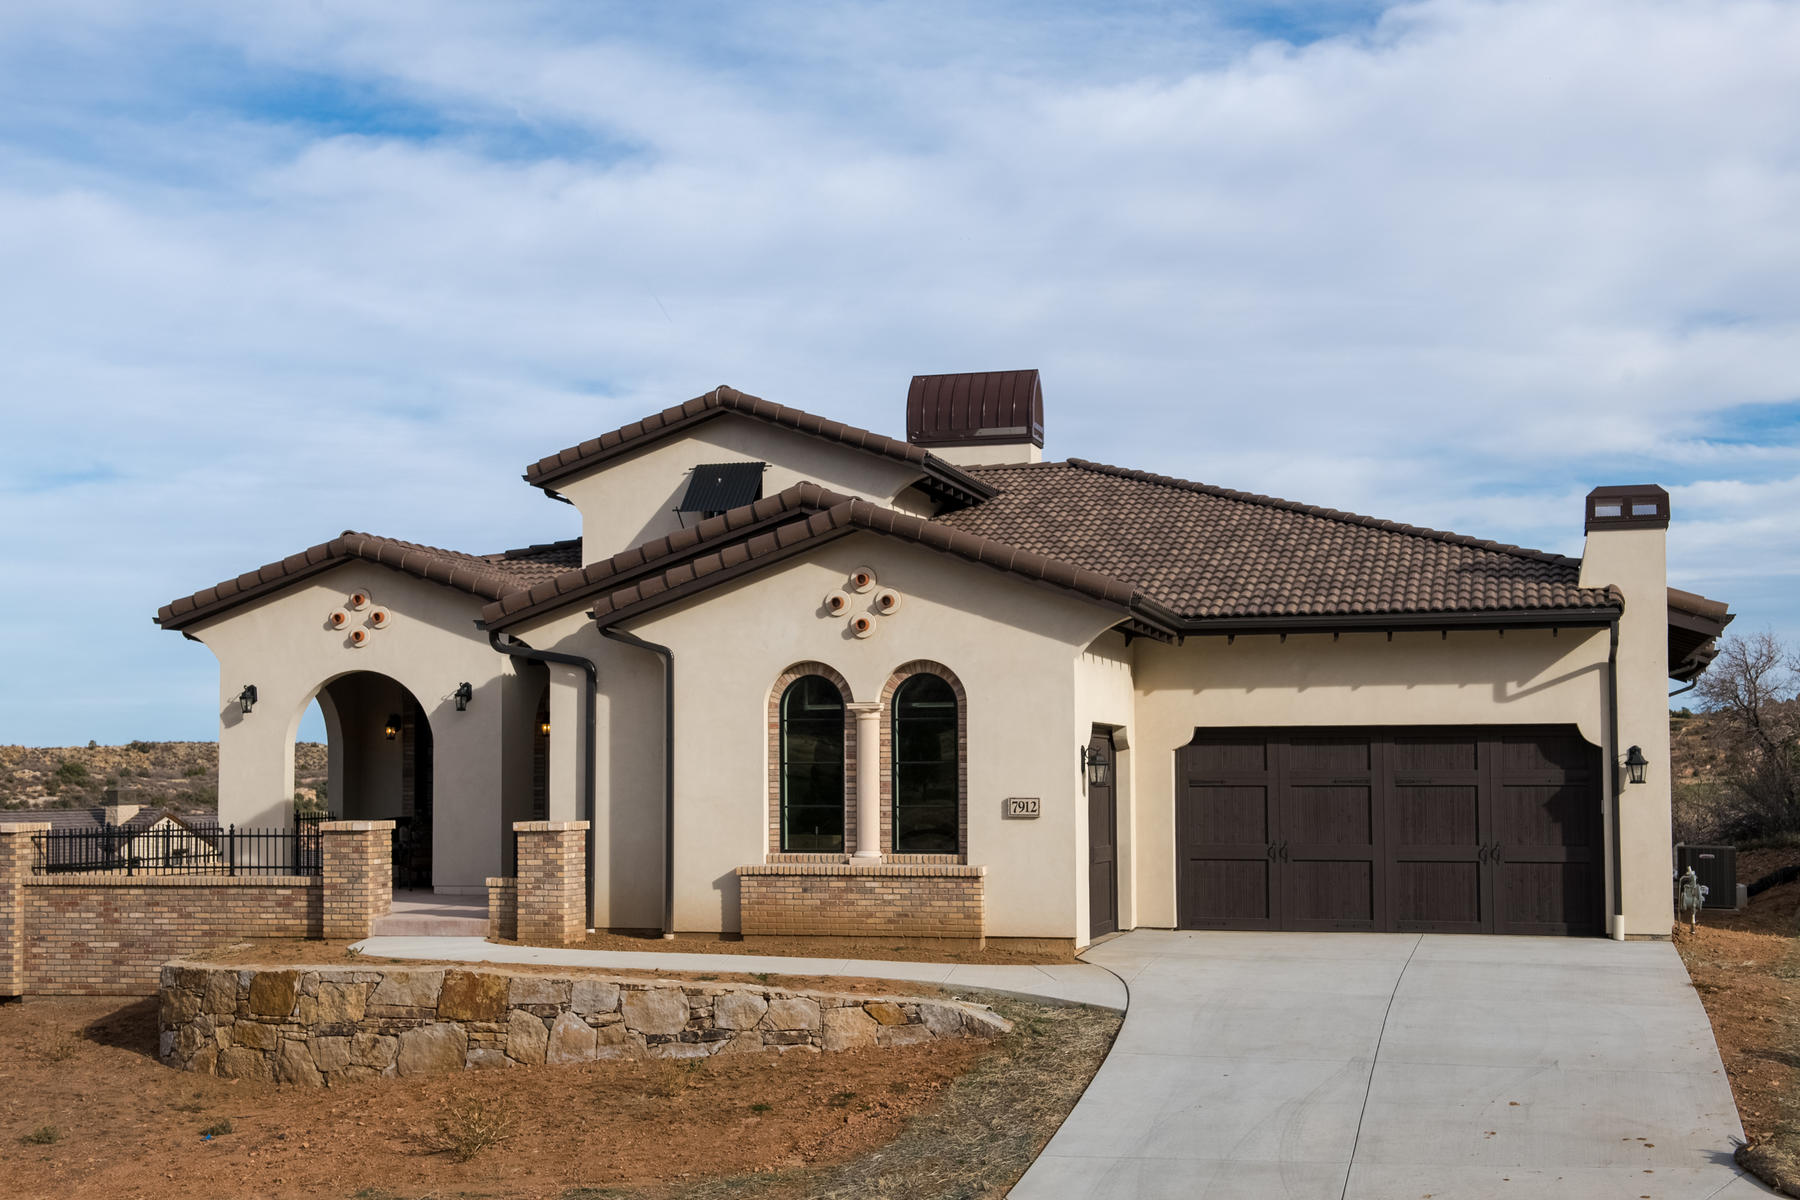 Single Family Home for Active at 7912 Galileo Way 7912 Galileo Way Littleton, Colorado 80125 United States